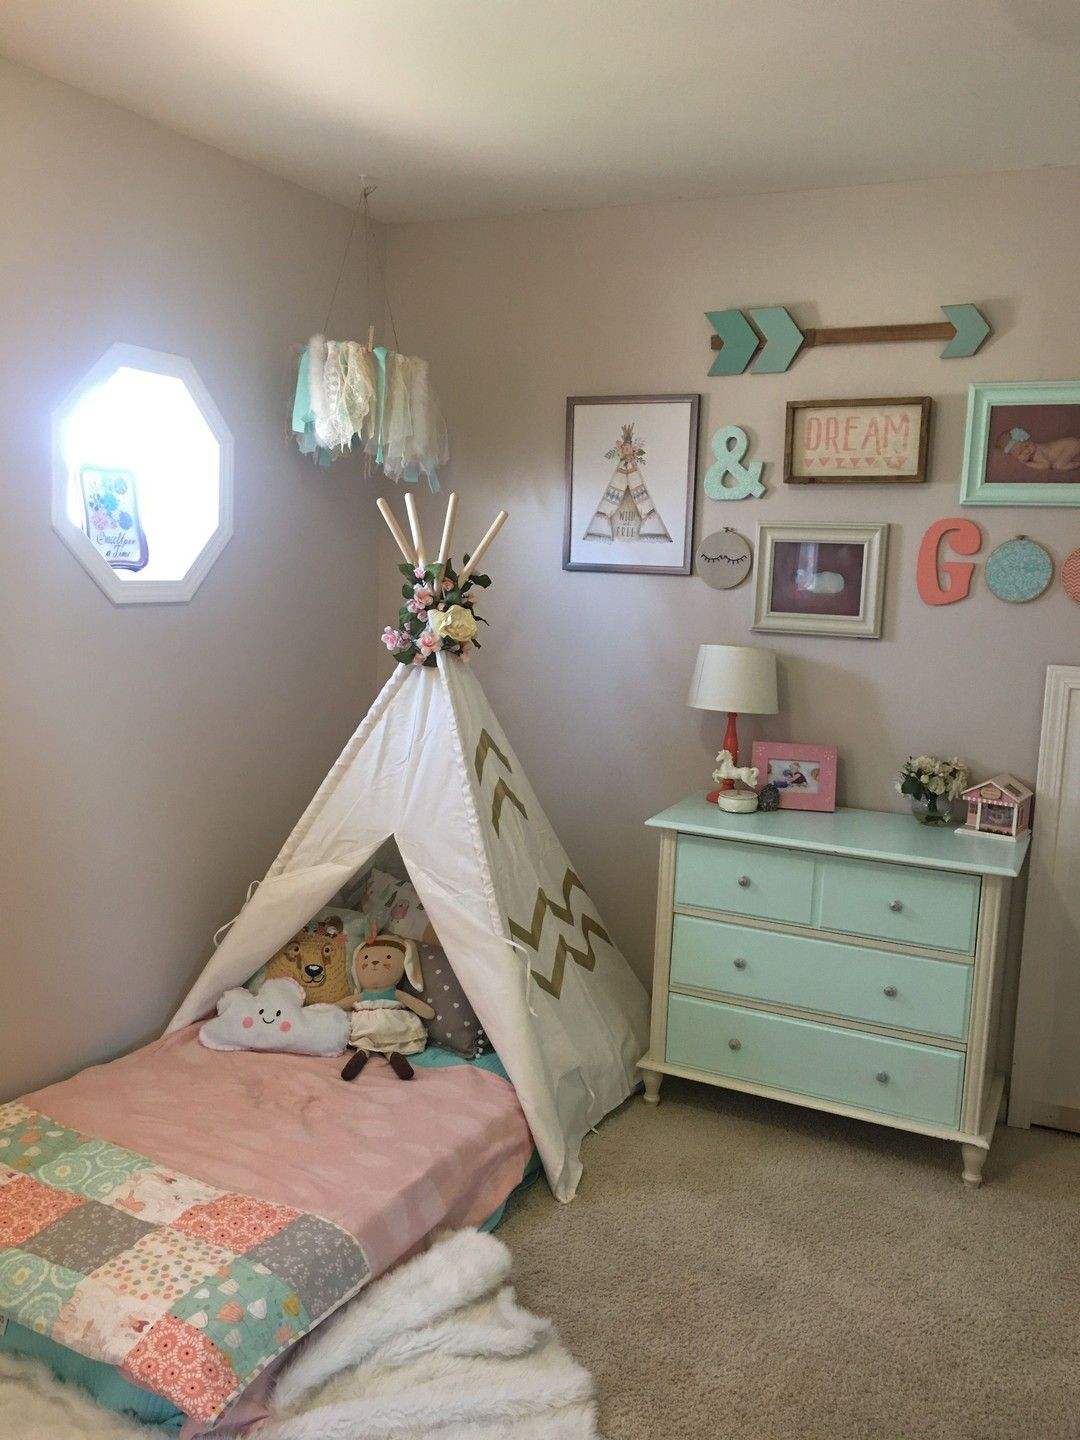 23 Inspiration for the Chicest of Toddler Rooms images